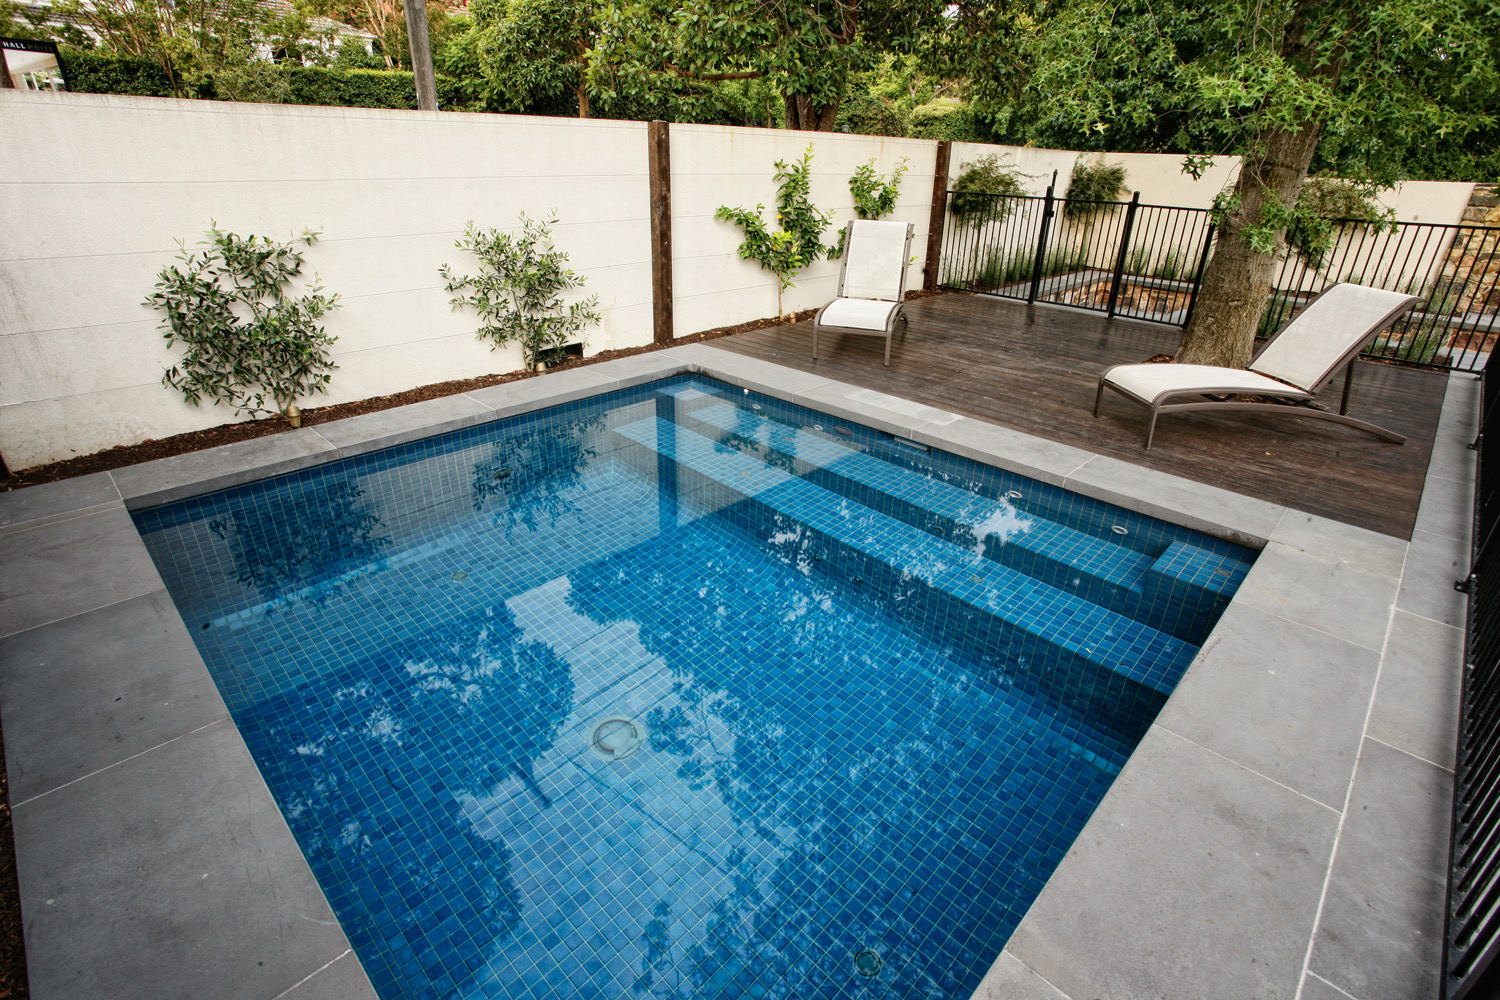 Designer paving touch completehome for Pool design 101